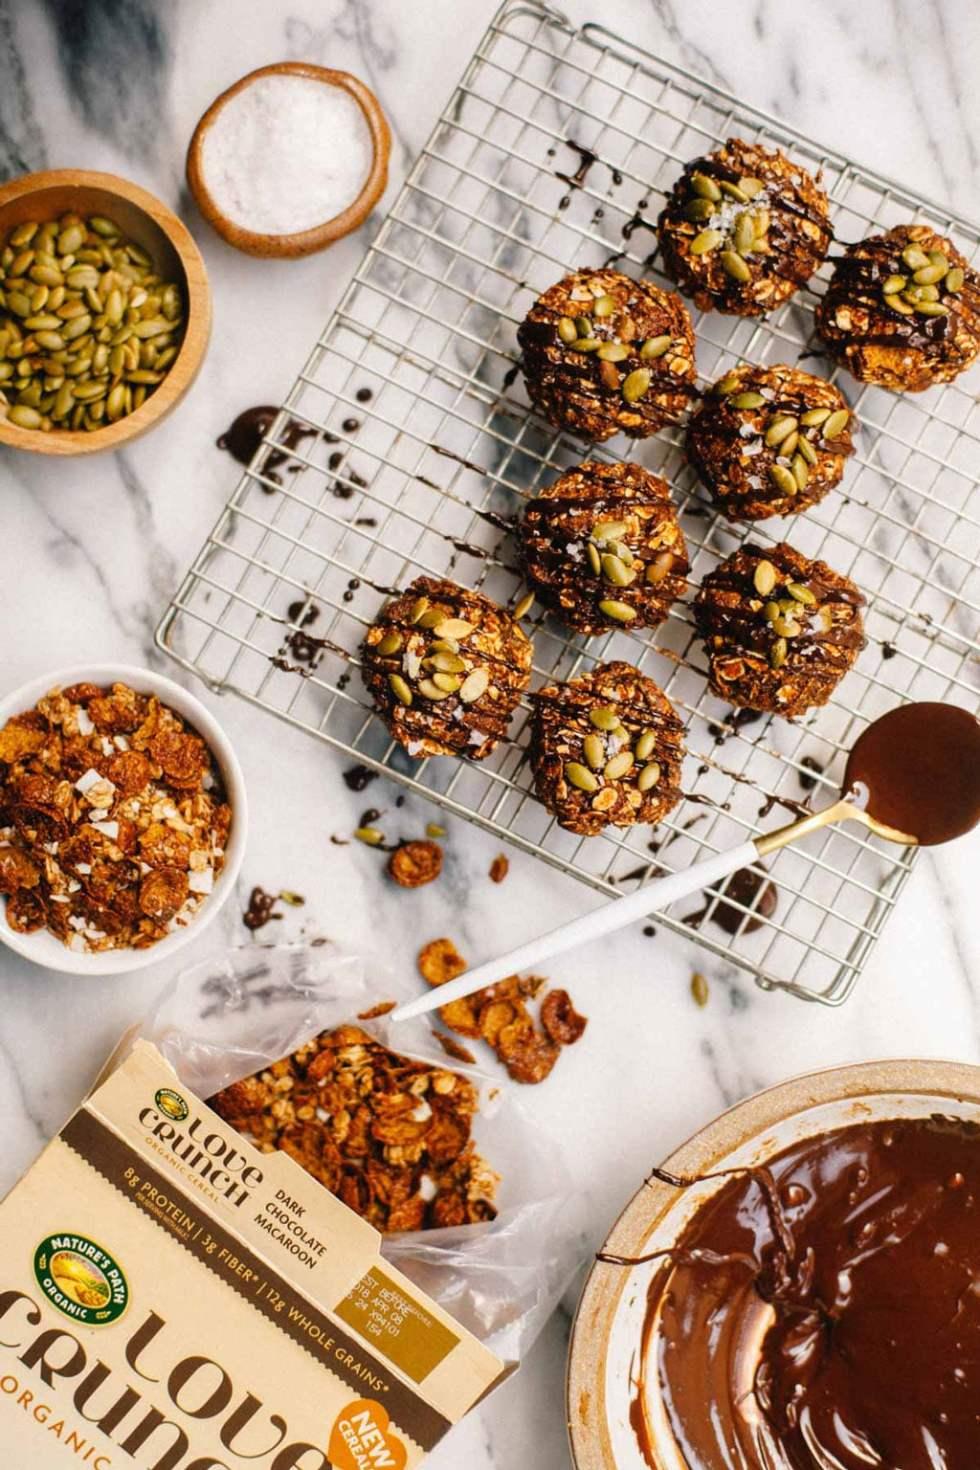 No Bake Chocolate Cookies made with Nature's Path Cereal.